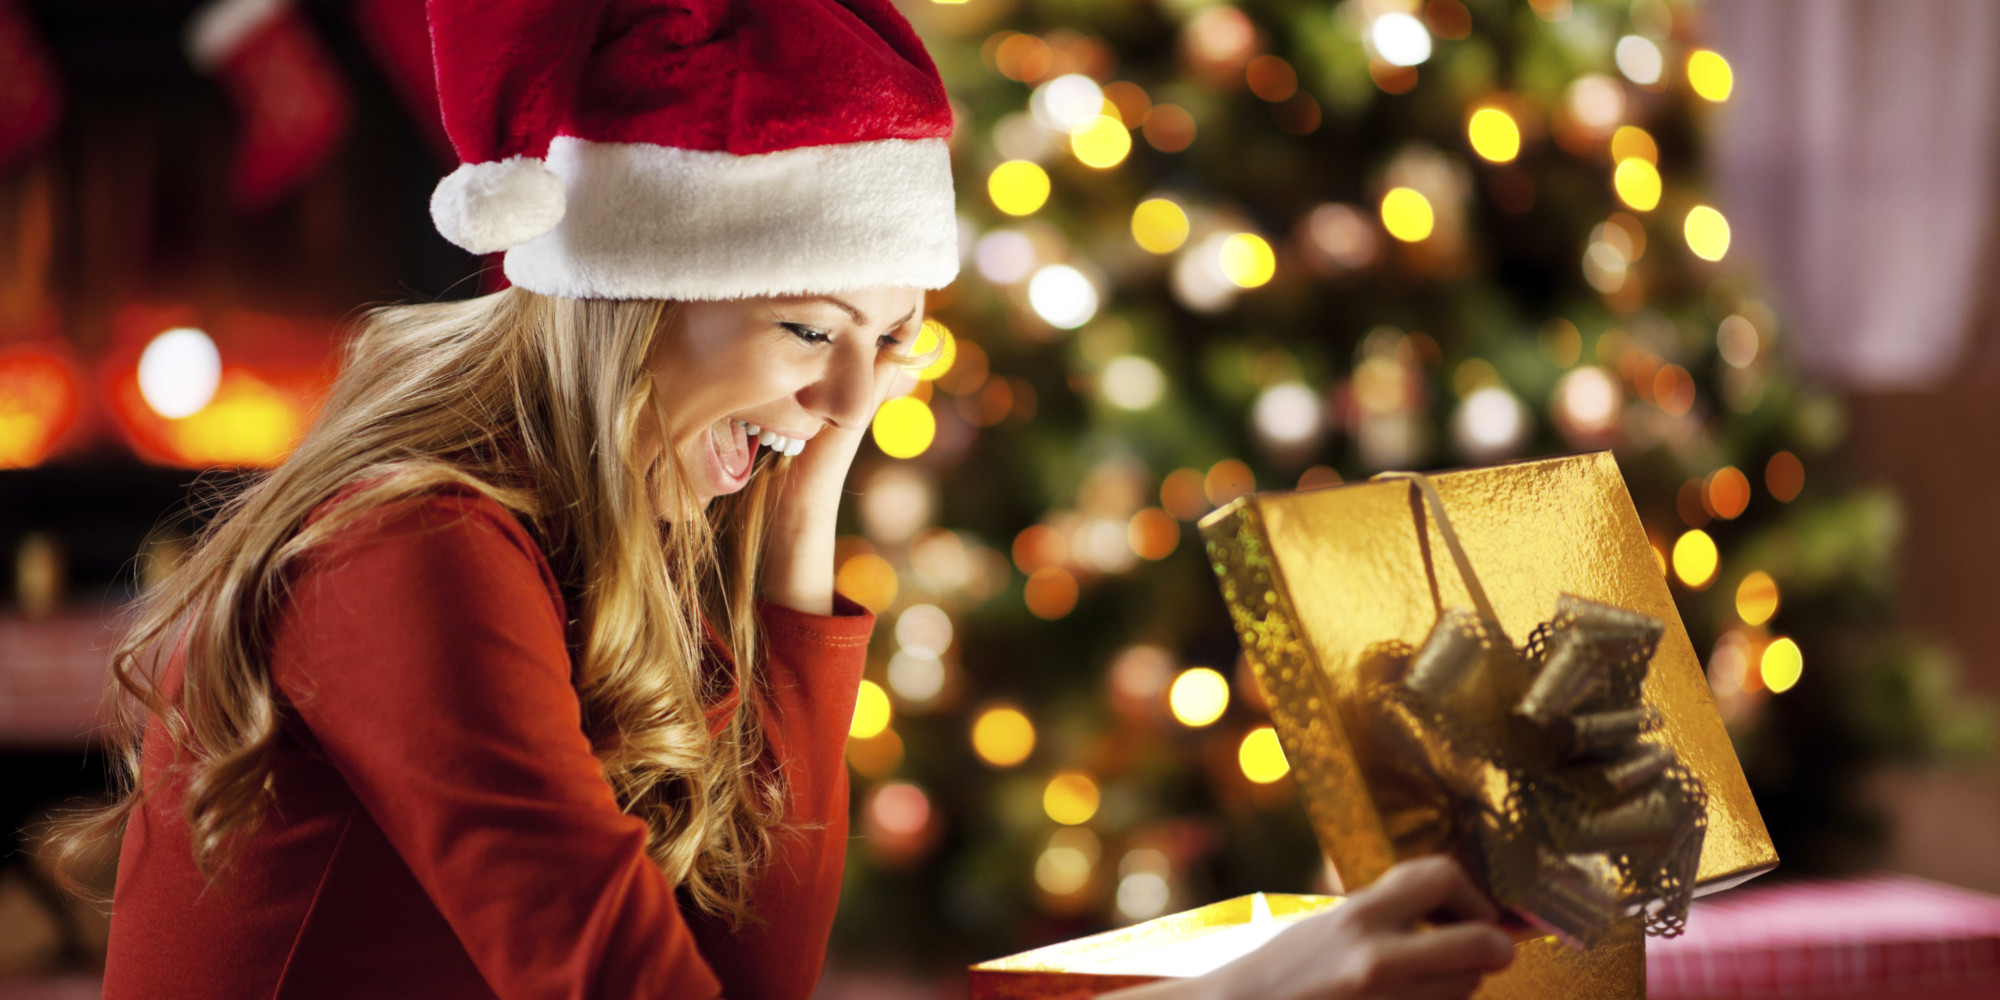 Top 50 Christmas Gifts For Teens - Christmas Celebration - All about ...